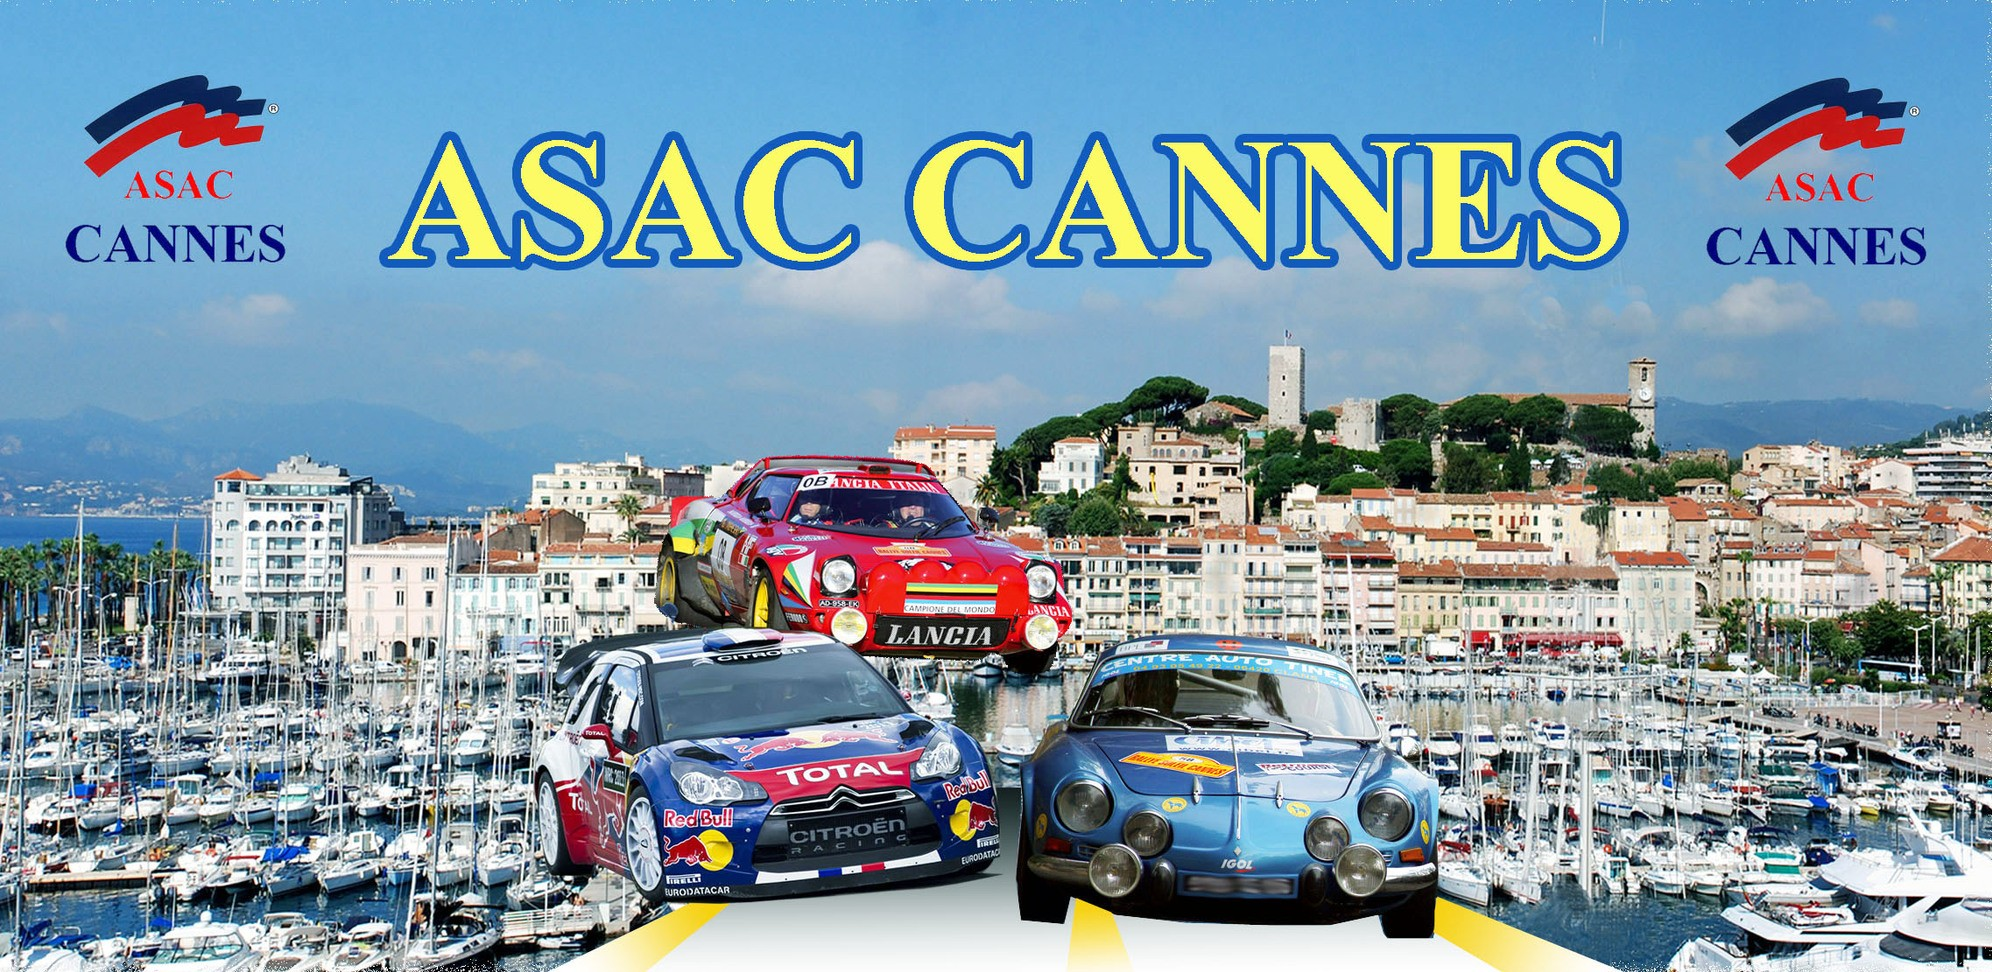 ASAC CANNES